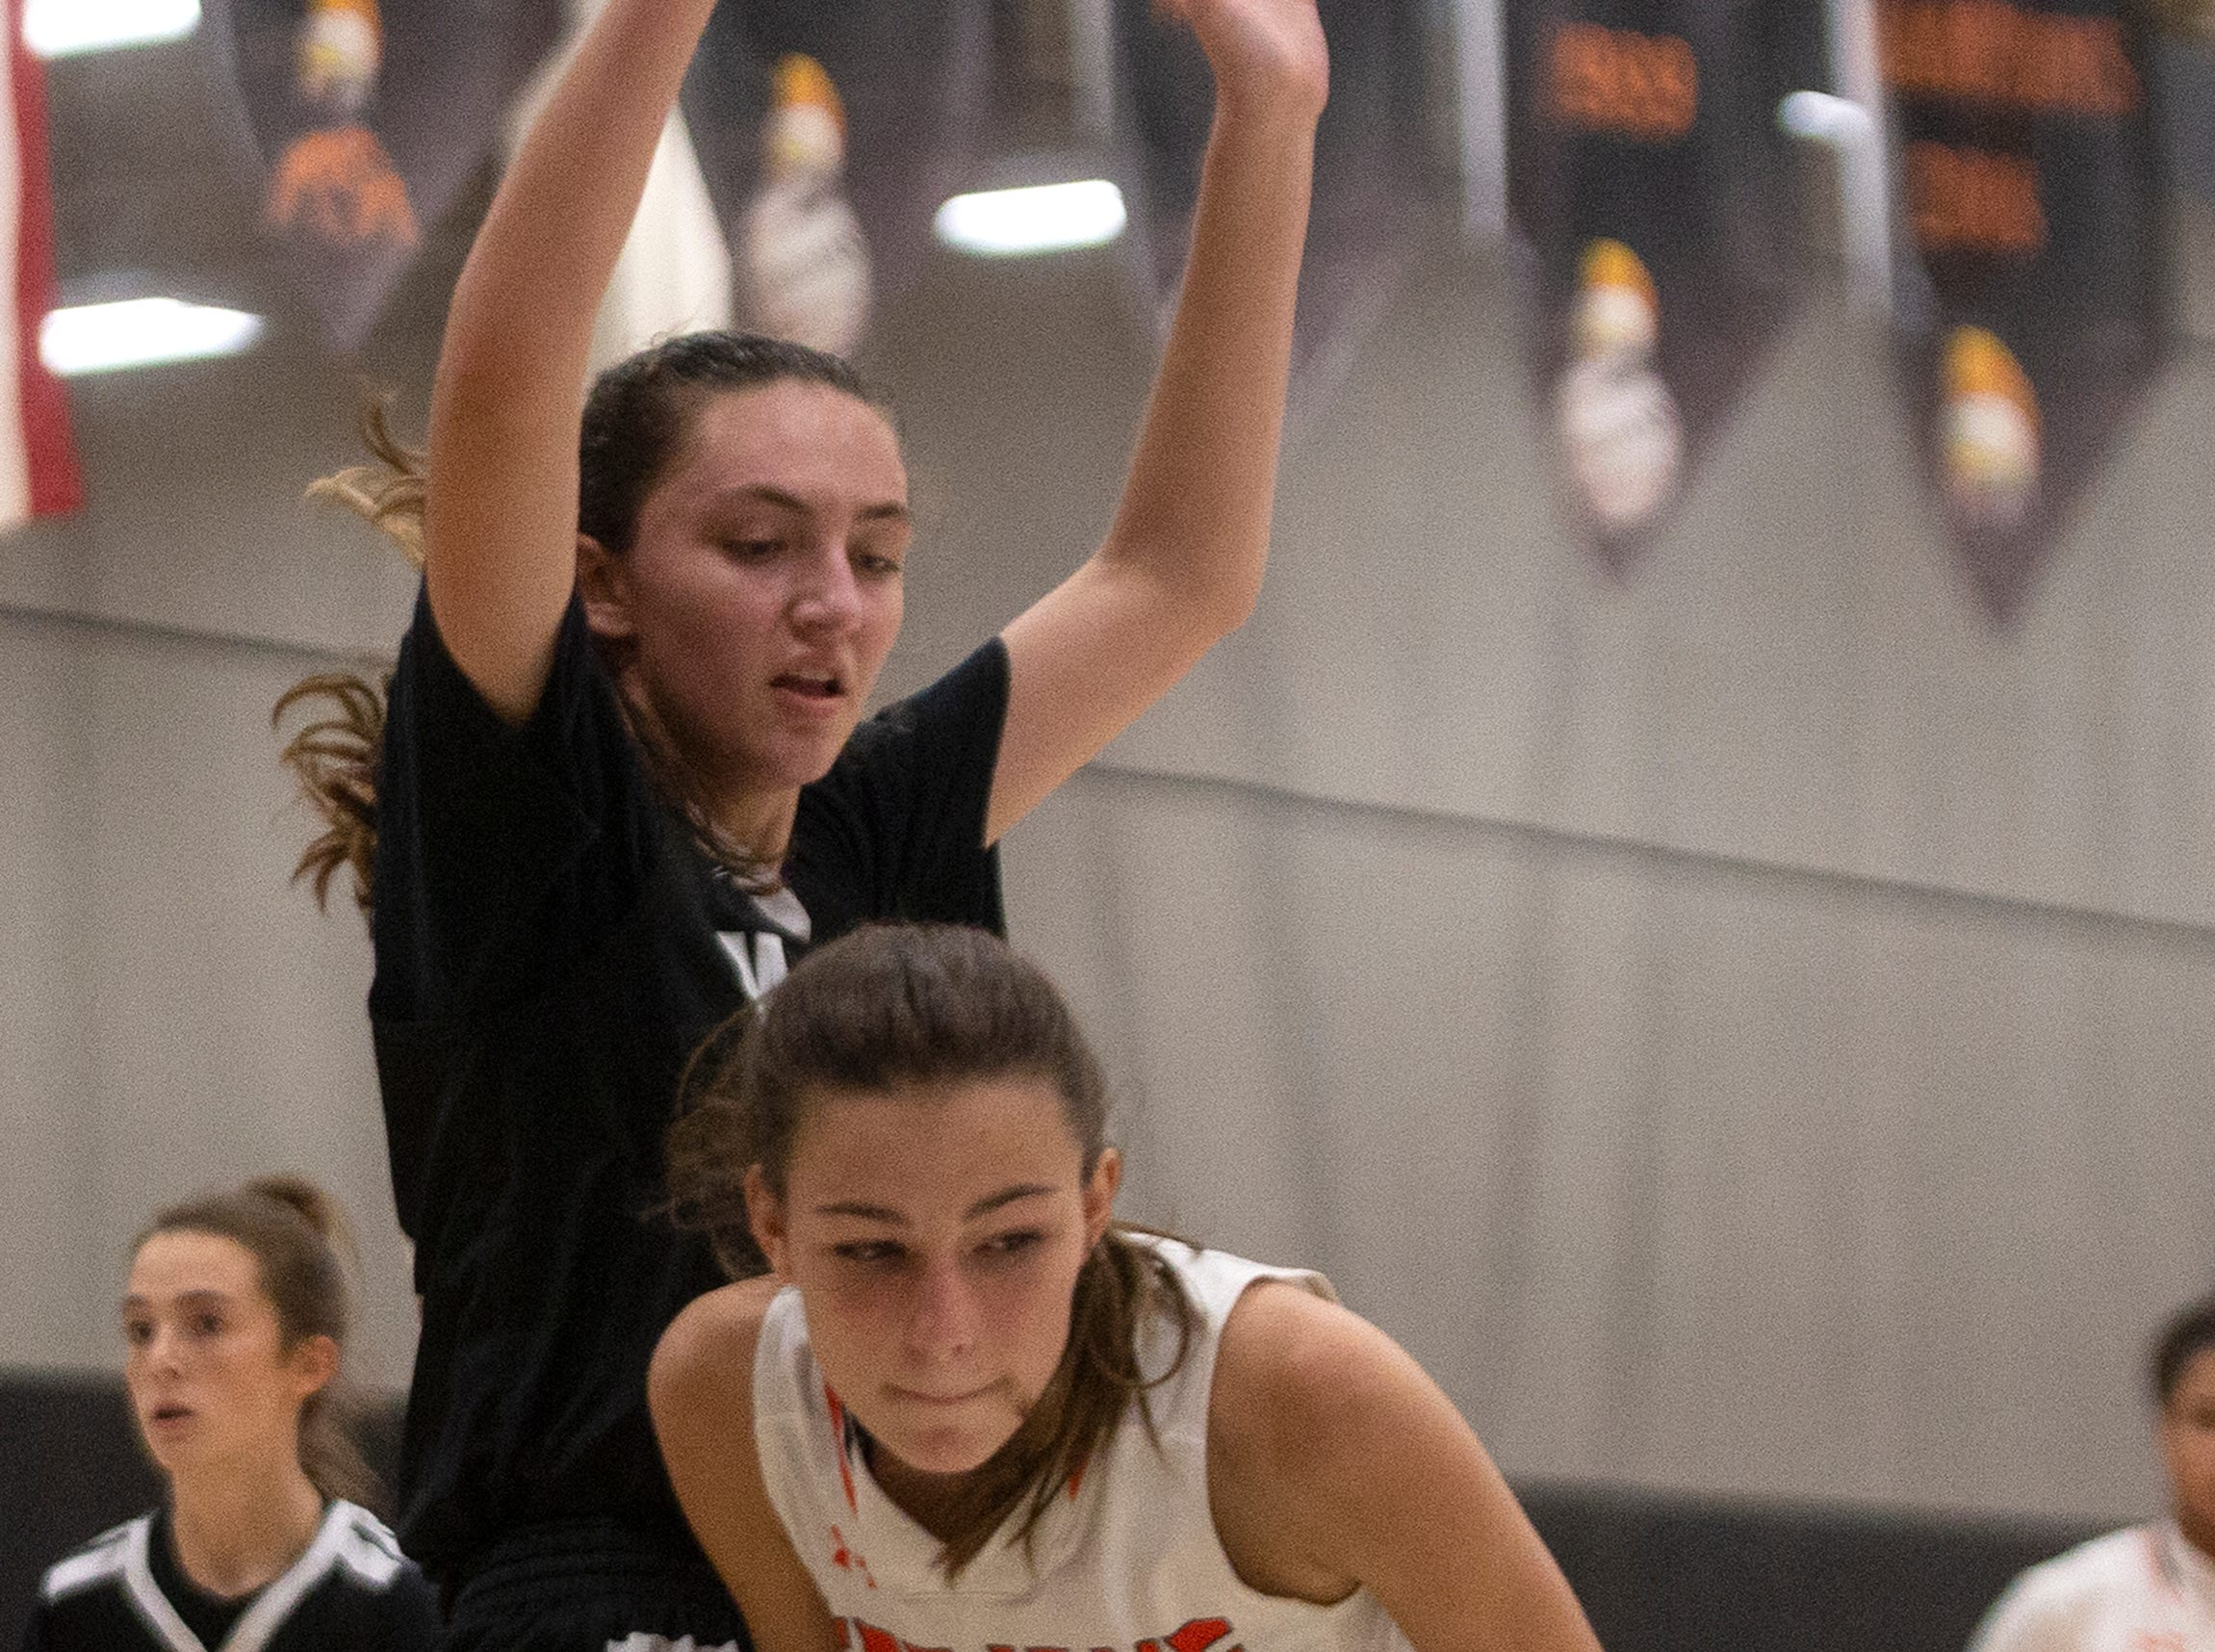 Lely High School's Savvy Weeks moves under the basket while defended by Mariners High School's Carlee Groeneveld, Thursday, Feb. 6, 2019, at Lely High School.